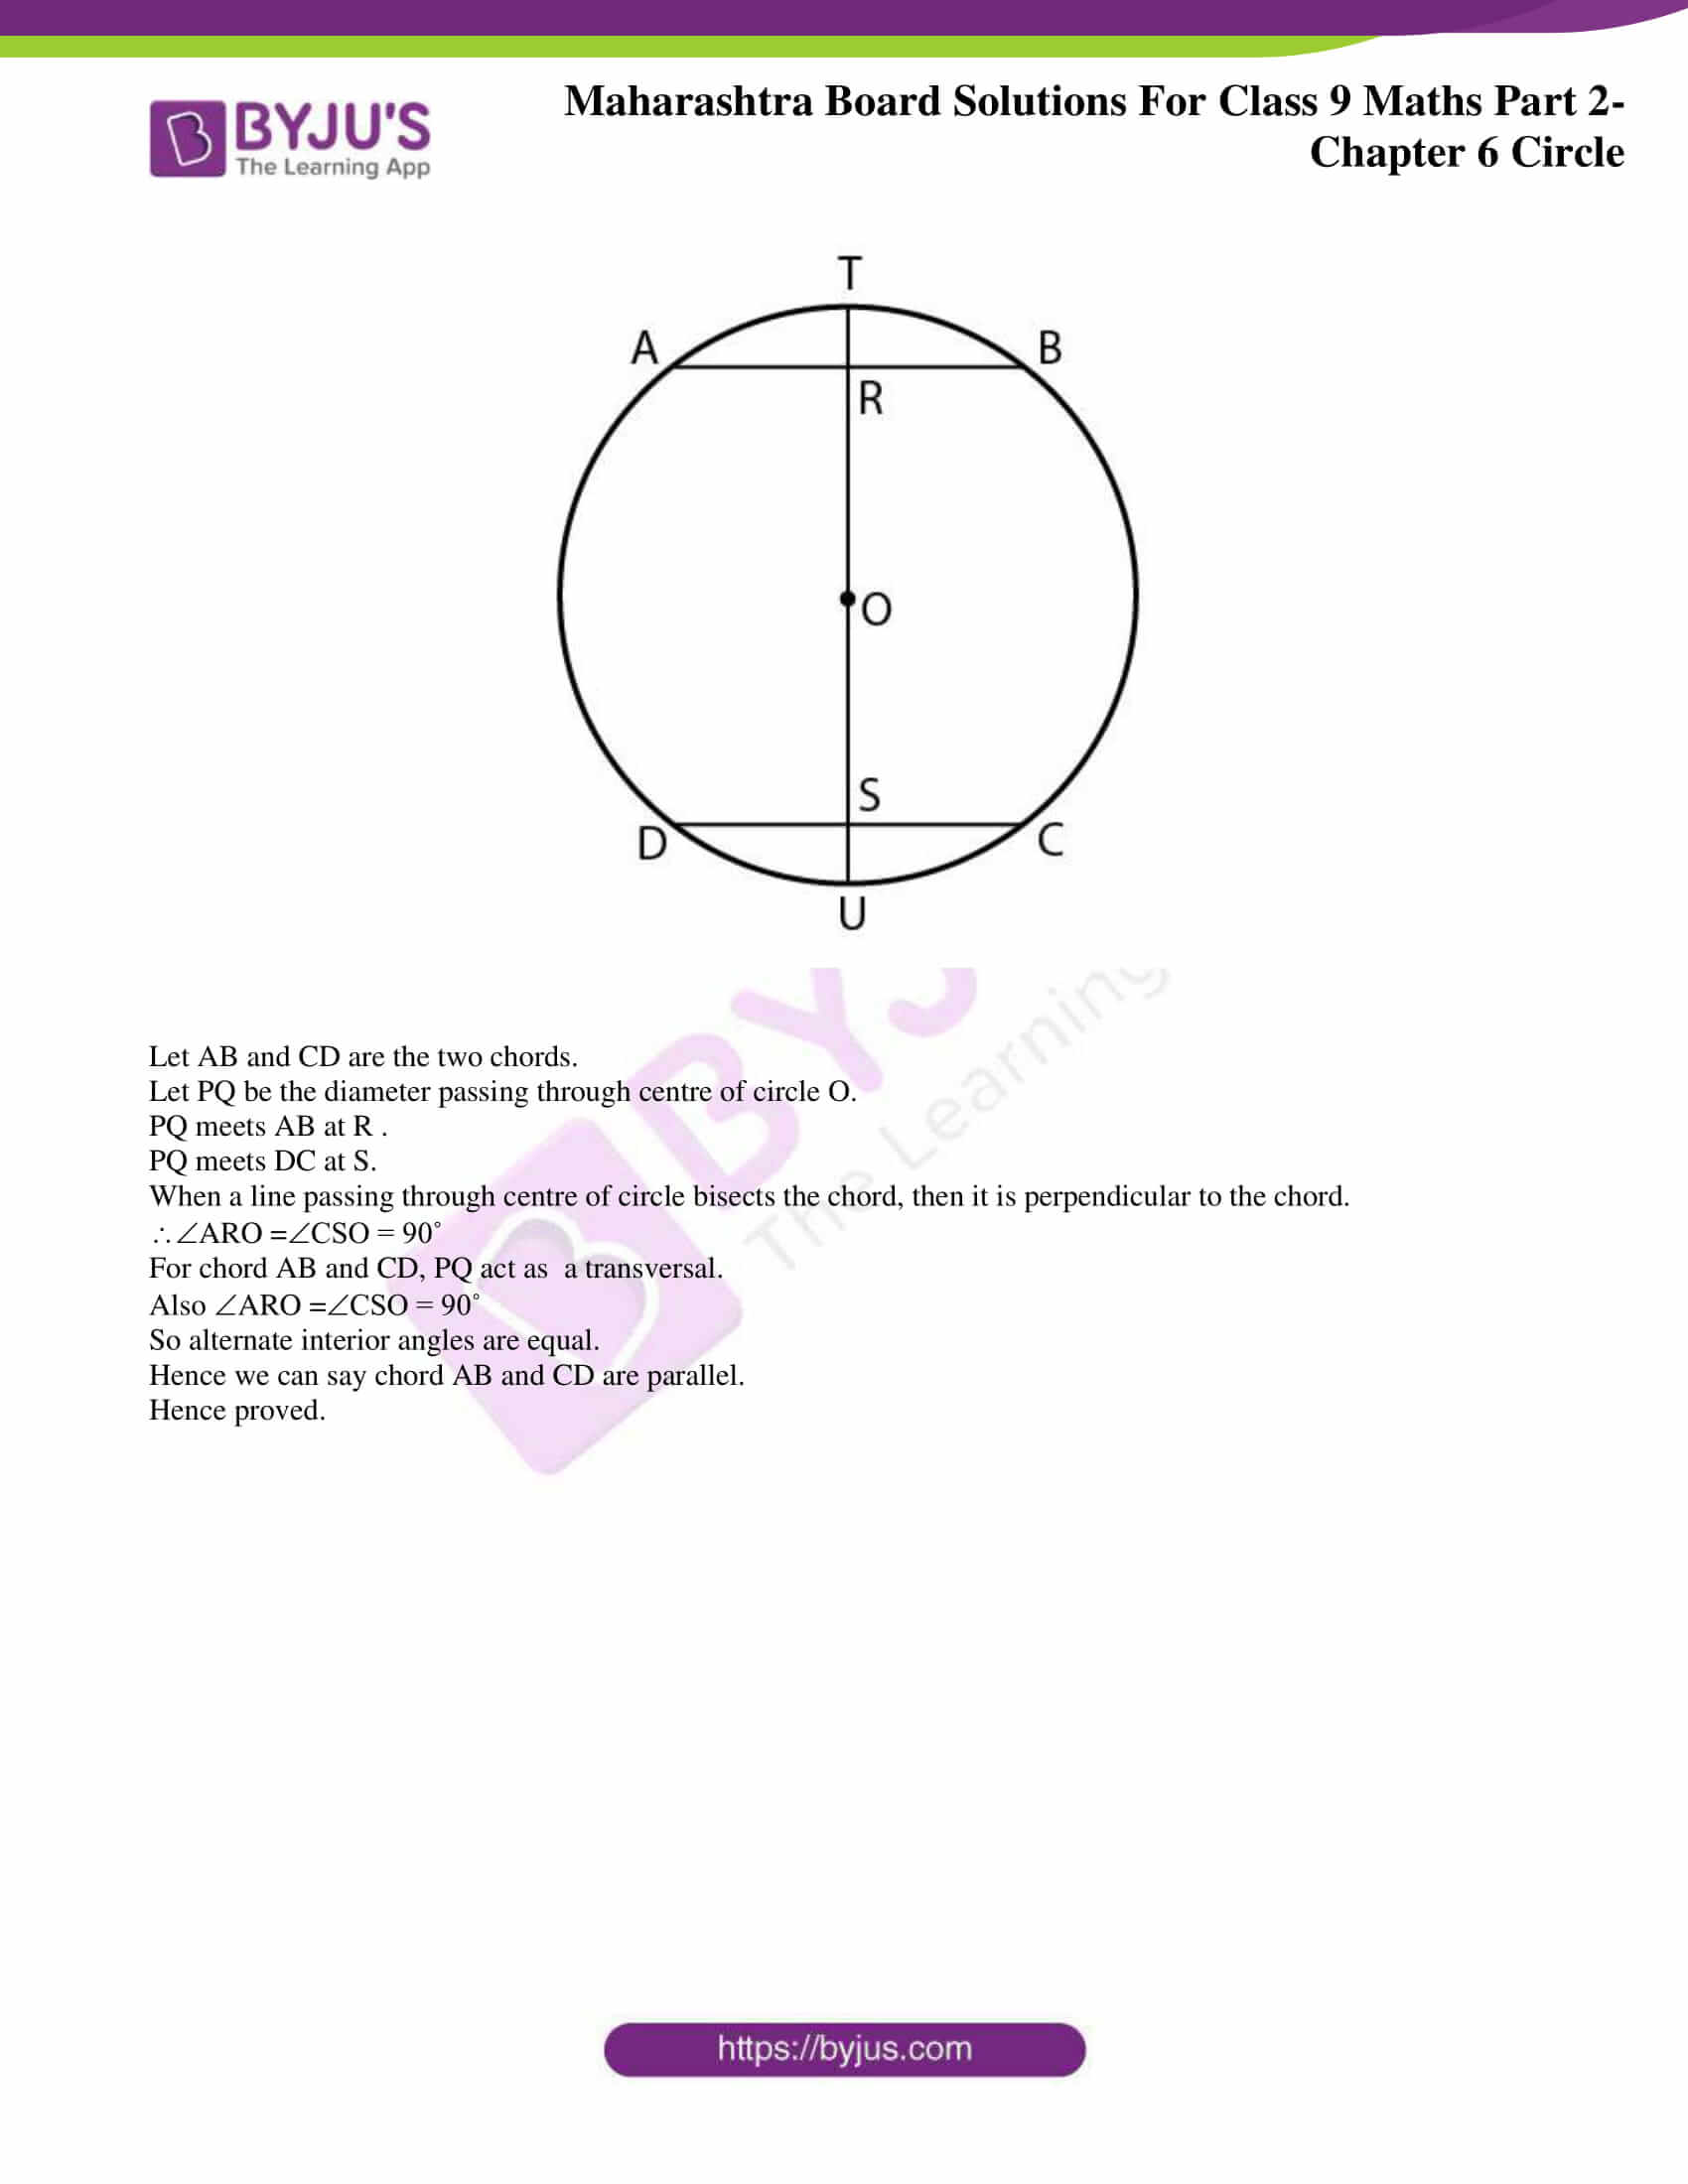 msbshse solutions for class 9 maths part 2 chapter 6 06